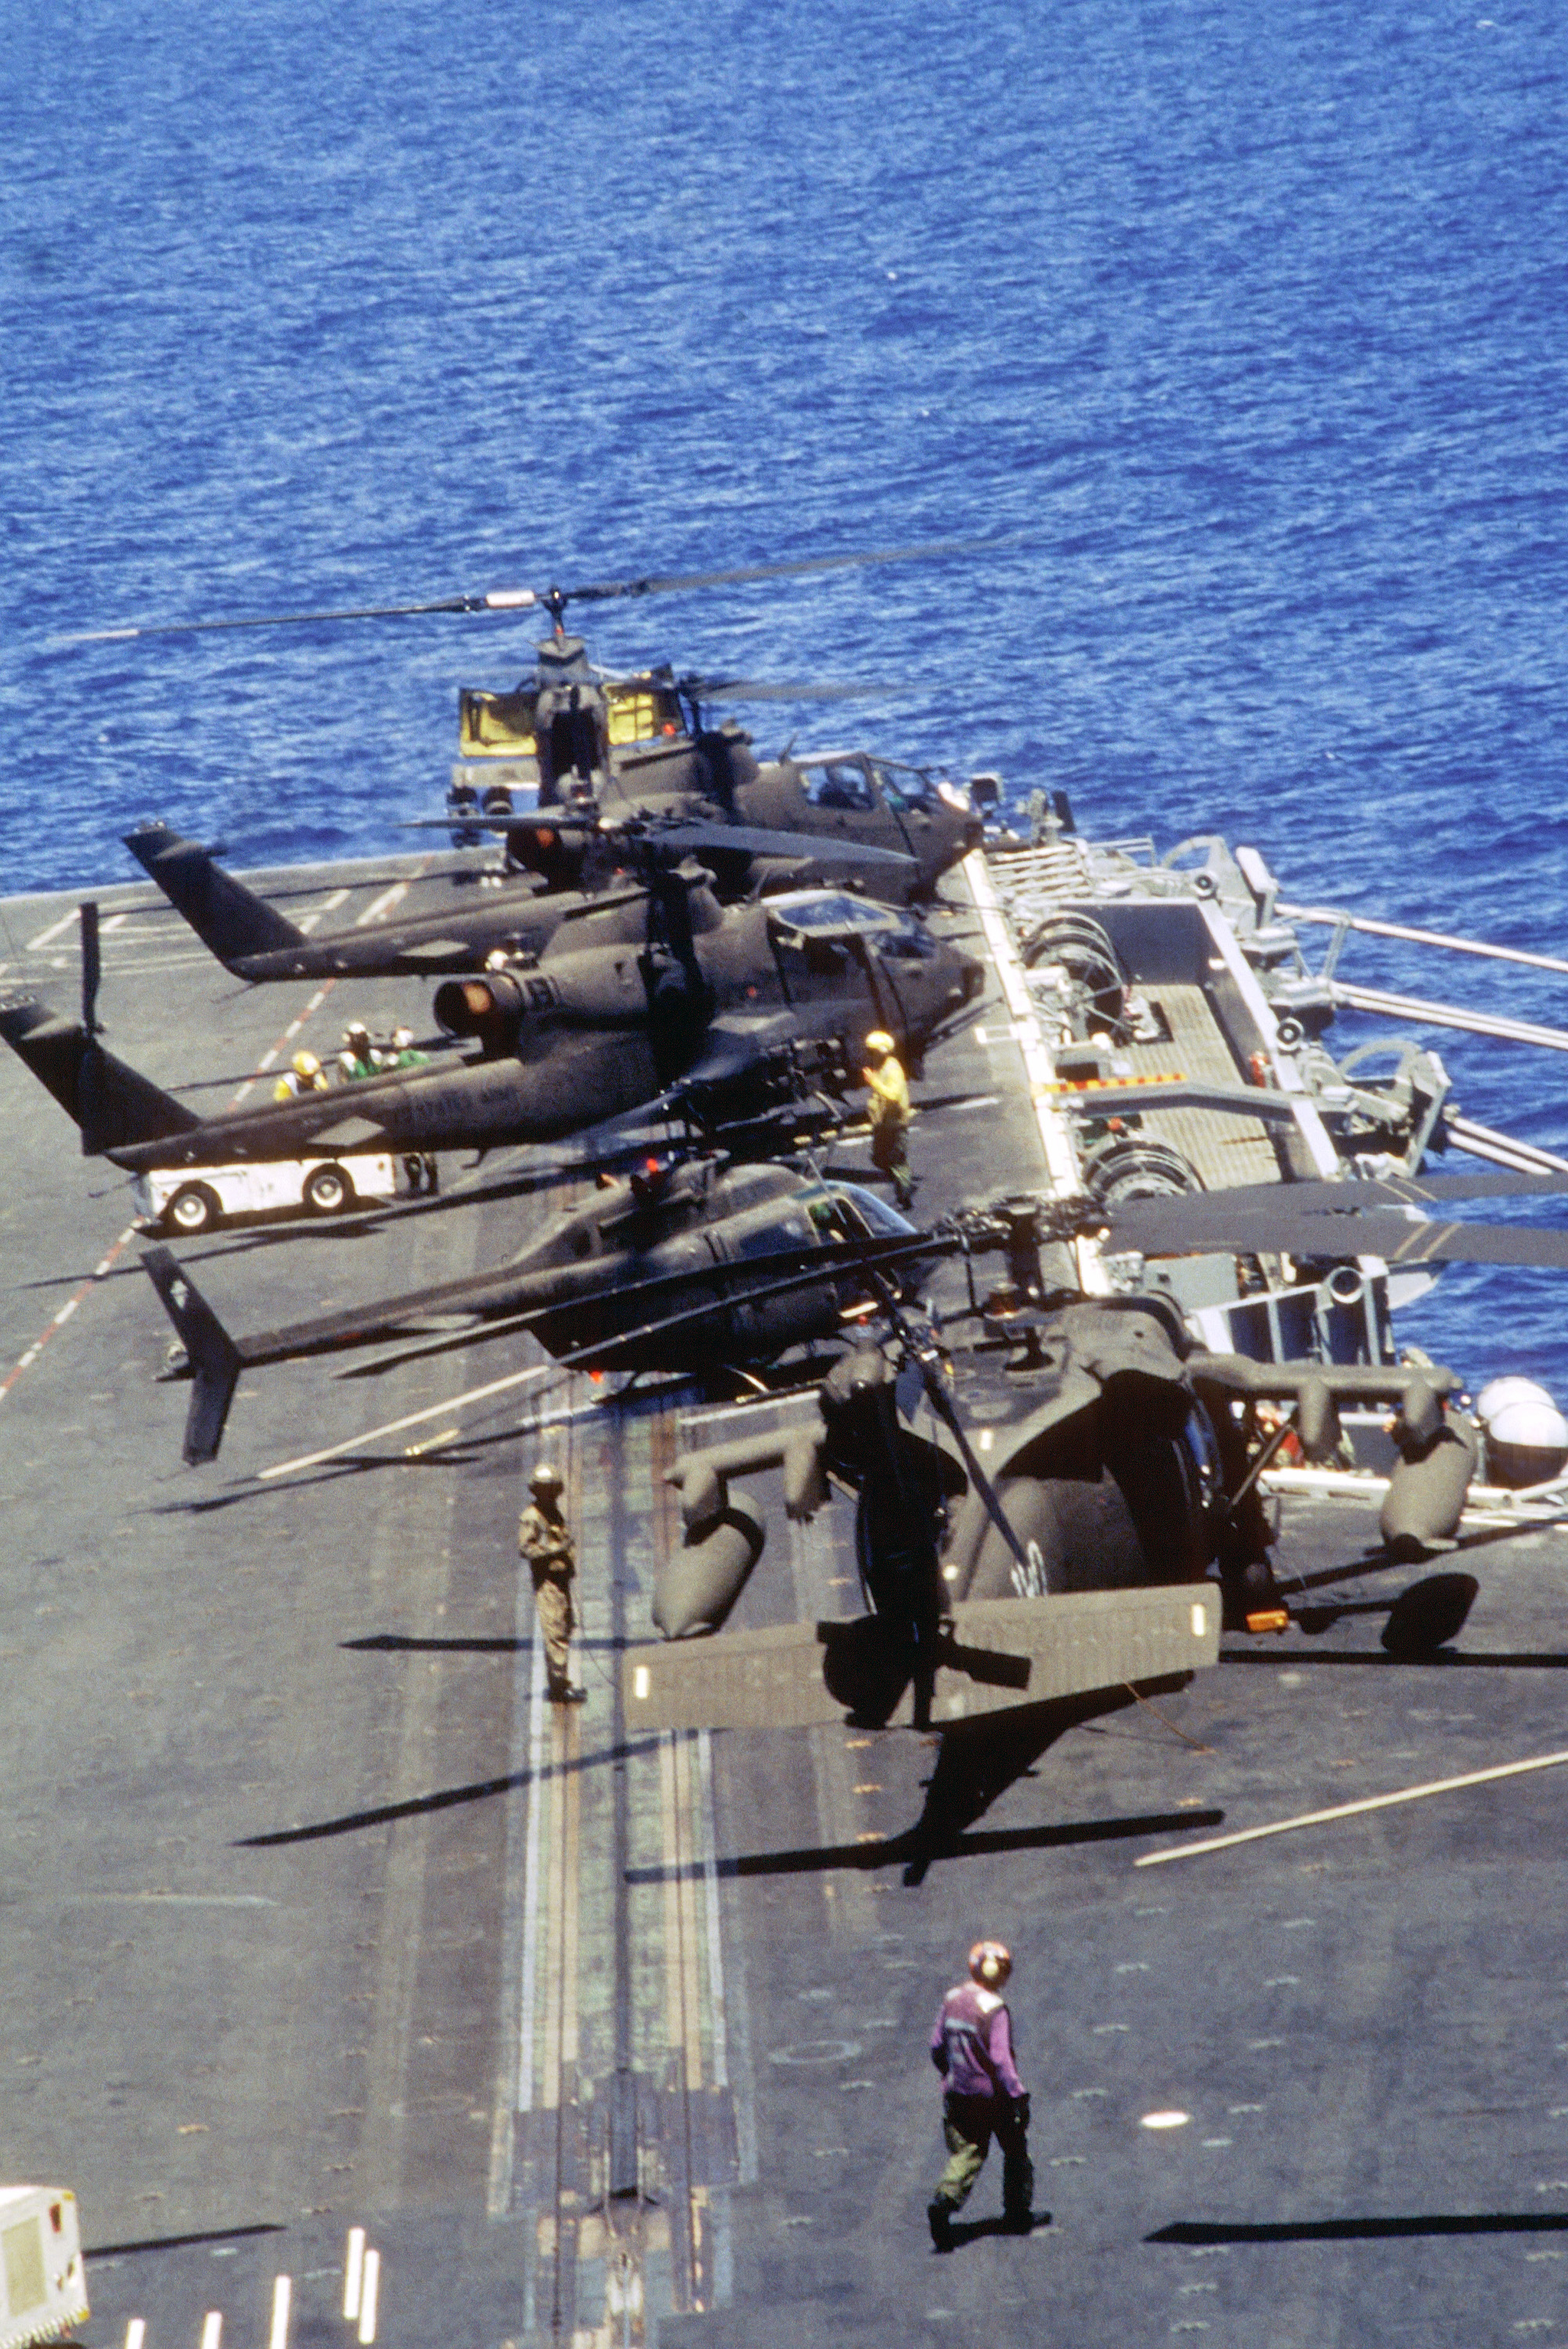 picture of black hawk helicopter with File Us Army Helicopters On Forward Flight Deck Of Uss Eisenhower  Cvn 69  Off Haiti In 1994 on File US Army helicopters on forward flight deck of USS Eisenhower  CVN 69  off Haiti in 1994 furthermore 16921 likewise Uh 60 additionally File Flickr   The U S  Army   Black Hawk boarding likewise 1258.